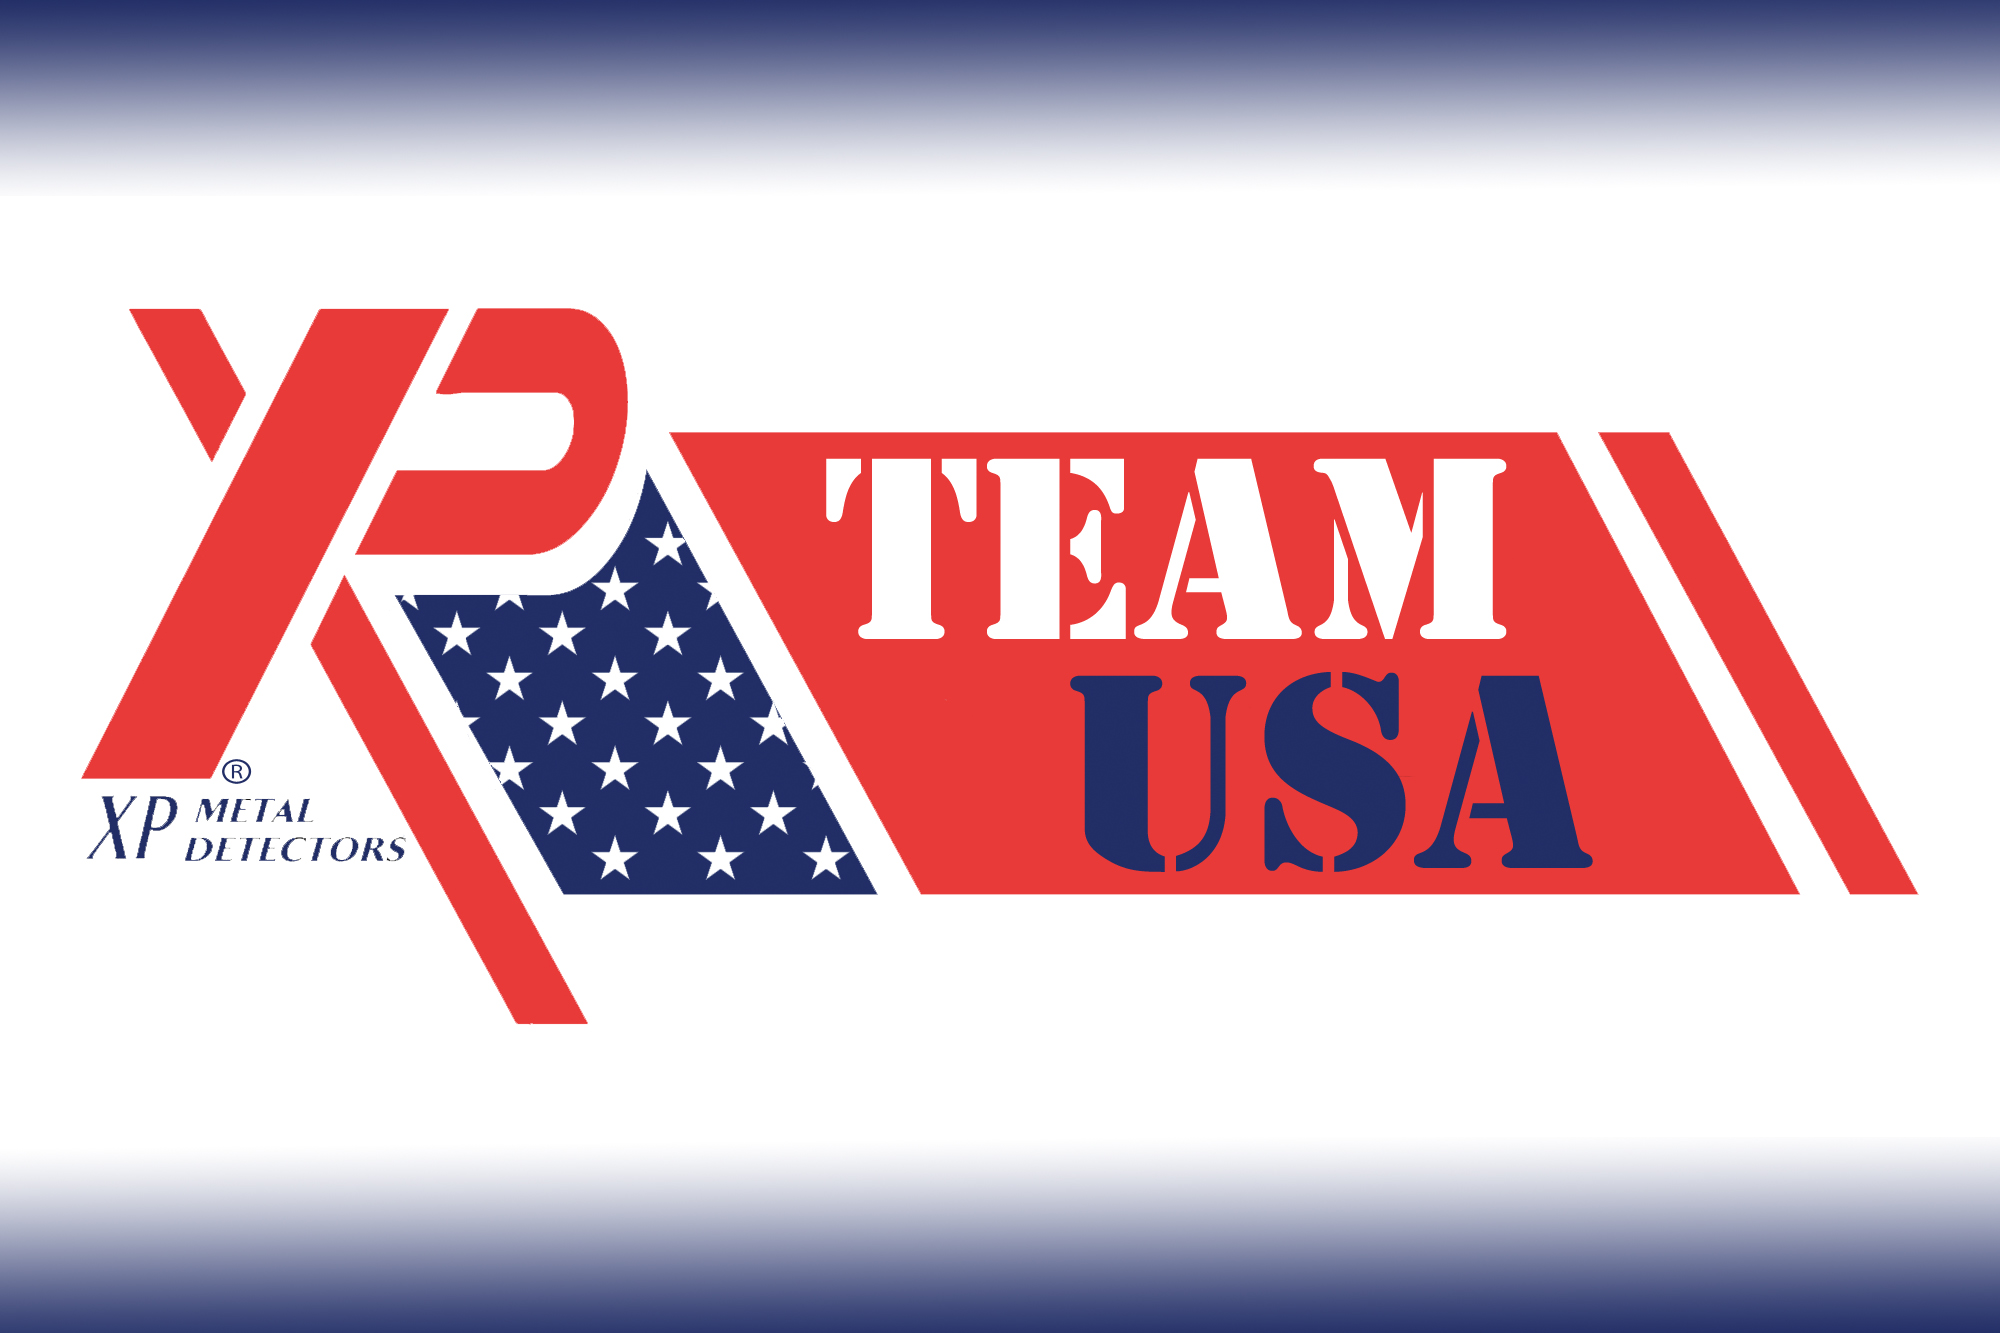 XP Team USA